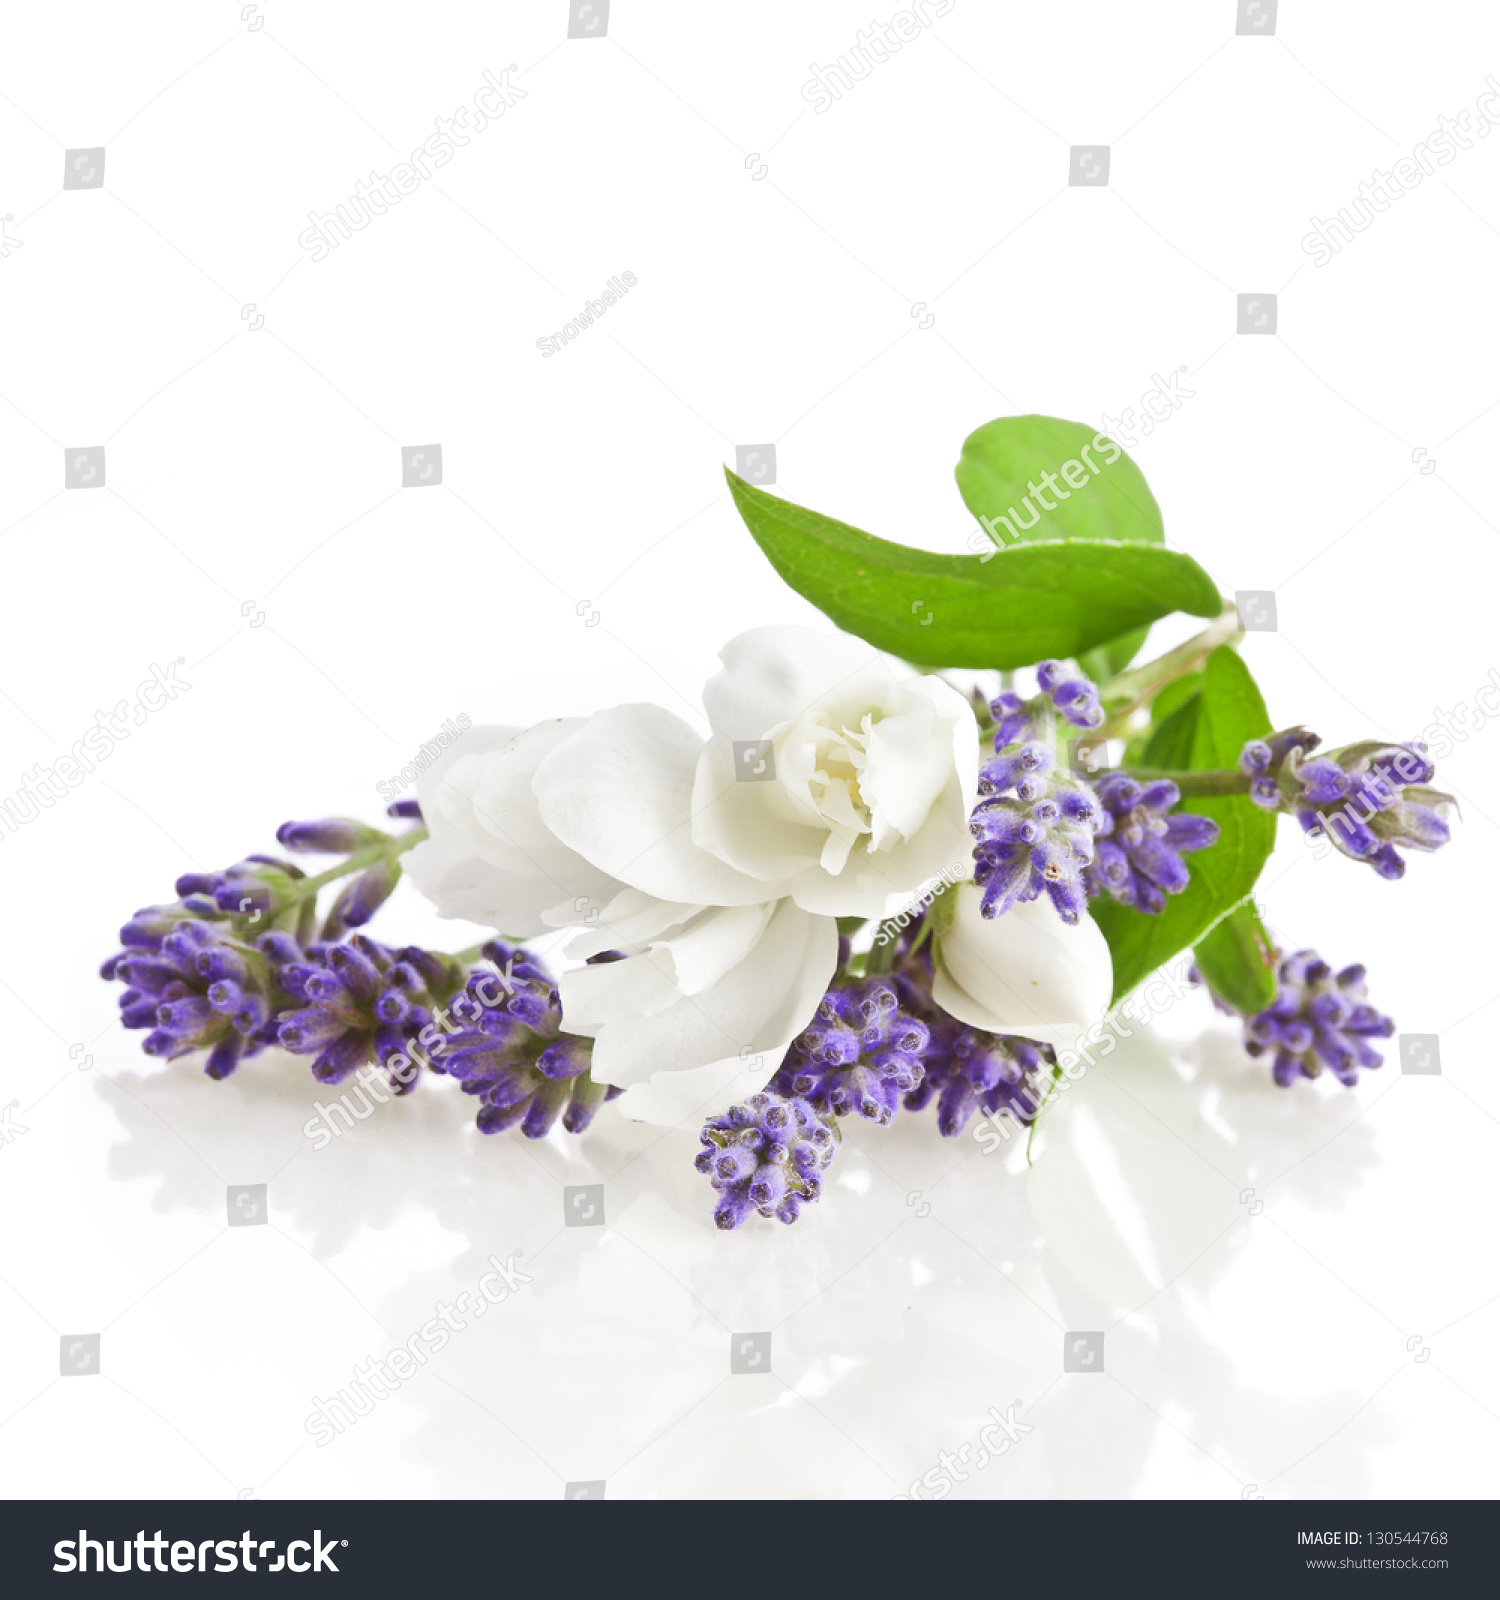 Royalty Free Bunch Of Lavender And Jasmine Flowers 130544768 Stock